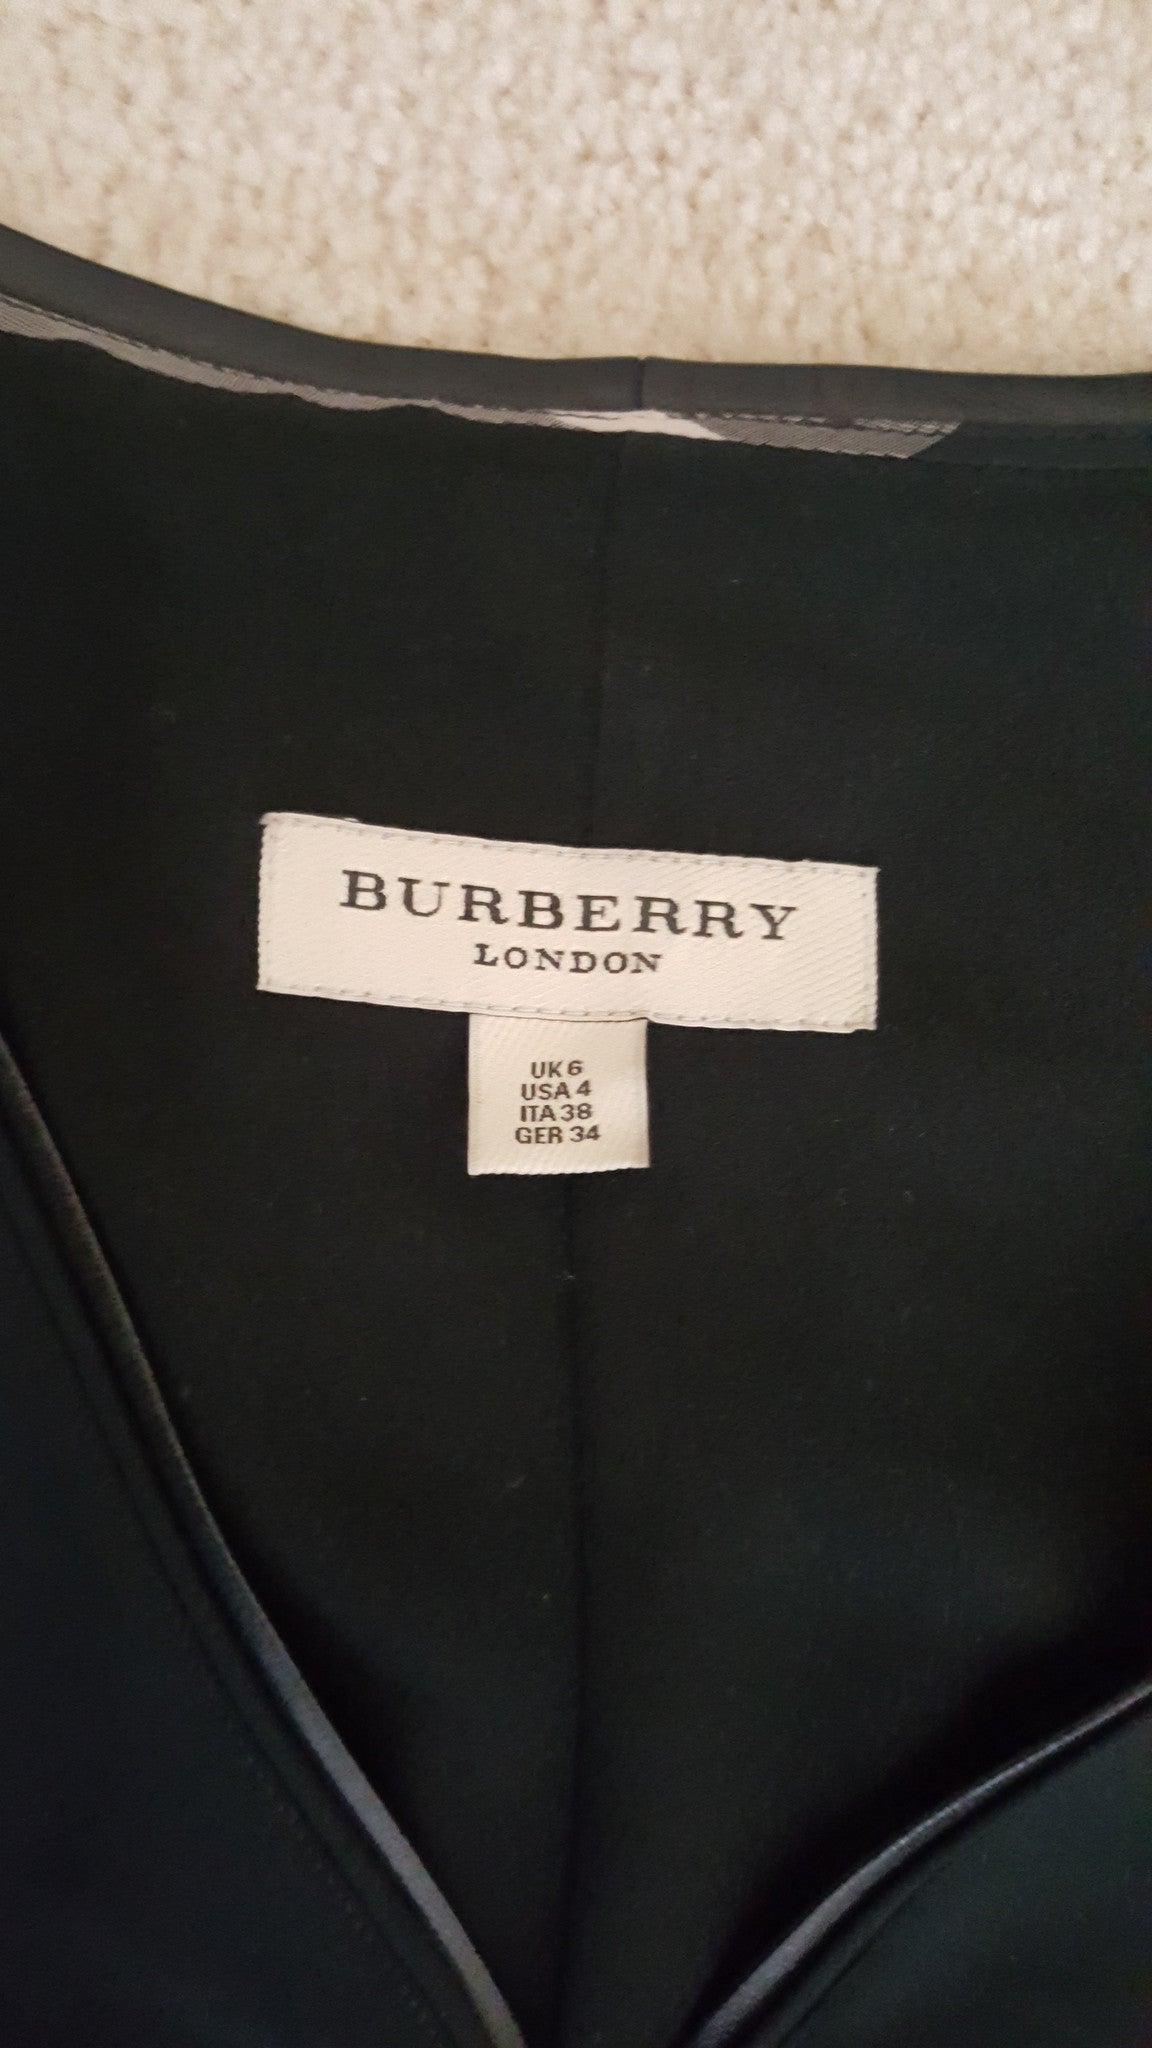 BURBERRY LONDON LEATHER AND METAL DETAIL SHIFT DRESS - BLACK - SIZE US 4